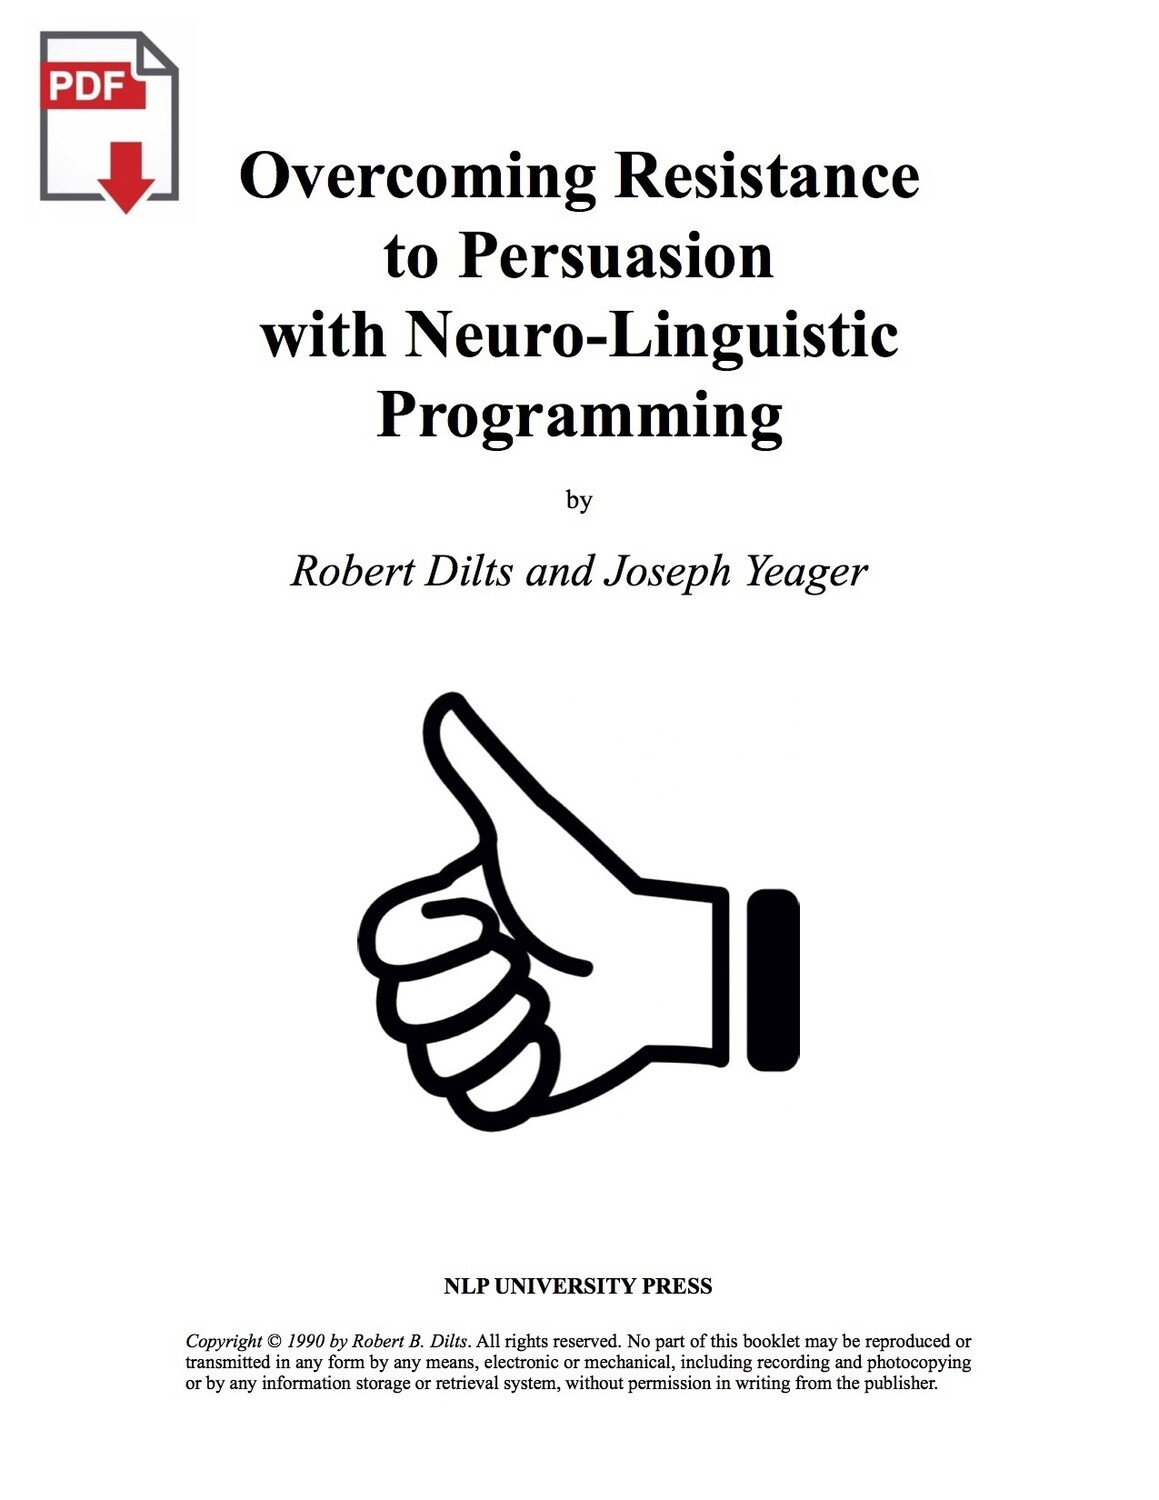 Overcoming Resistance to Persuasion with Neuro-Linguistic Programming [PDF]